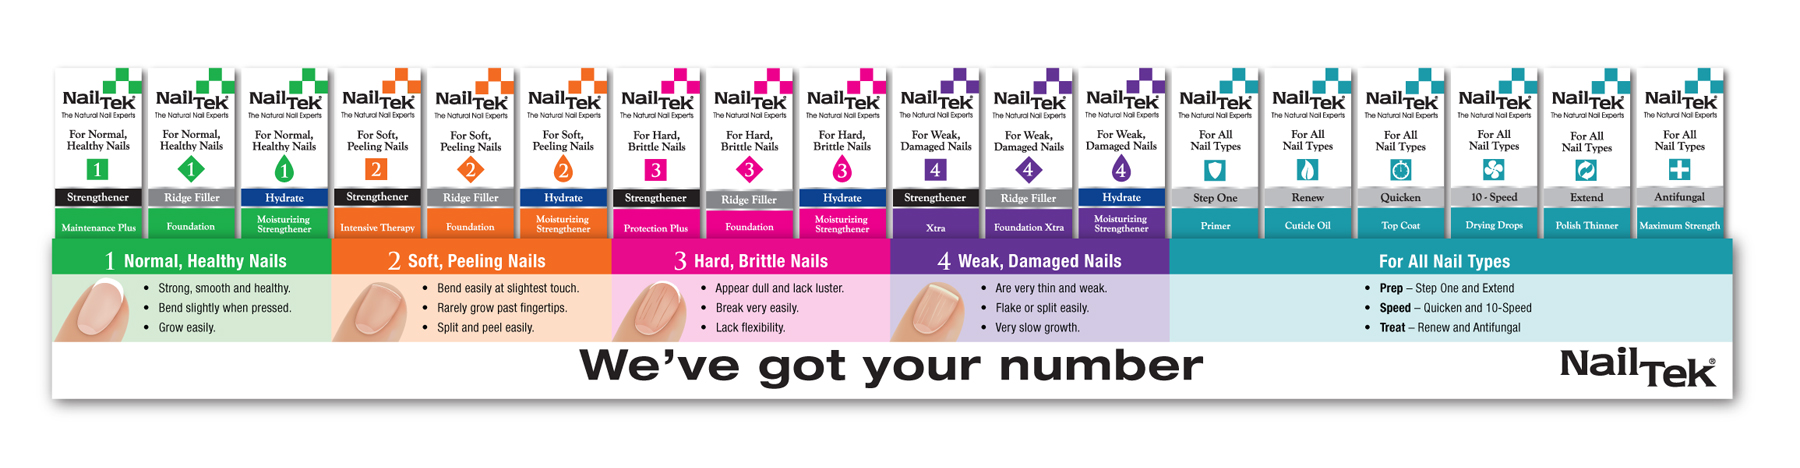 Nail Tek Unveils New Color-Coded Number System